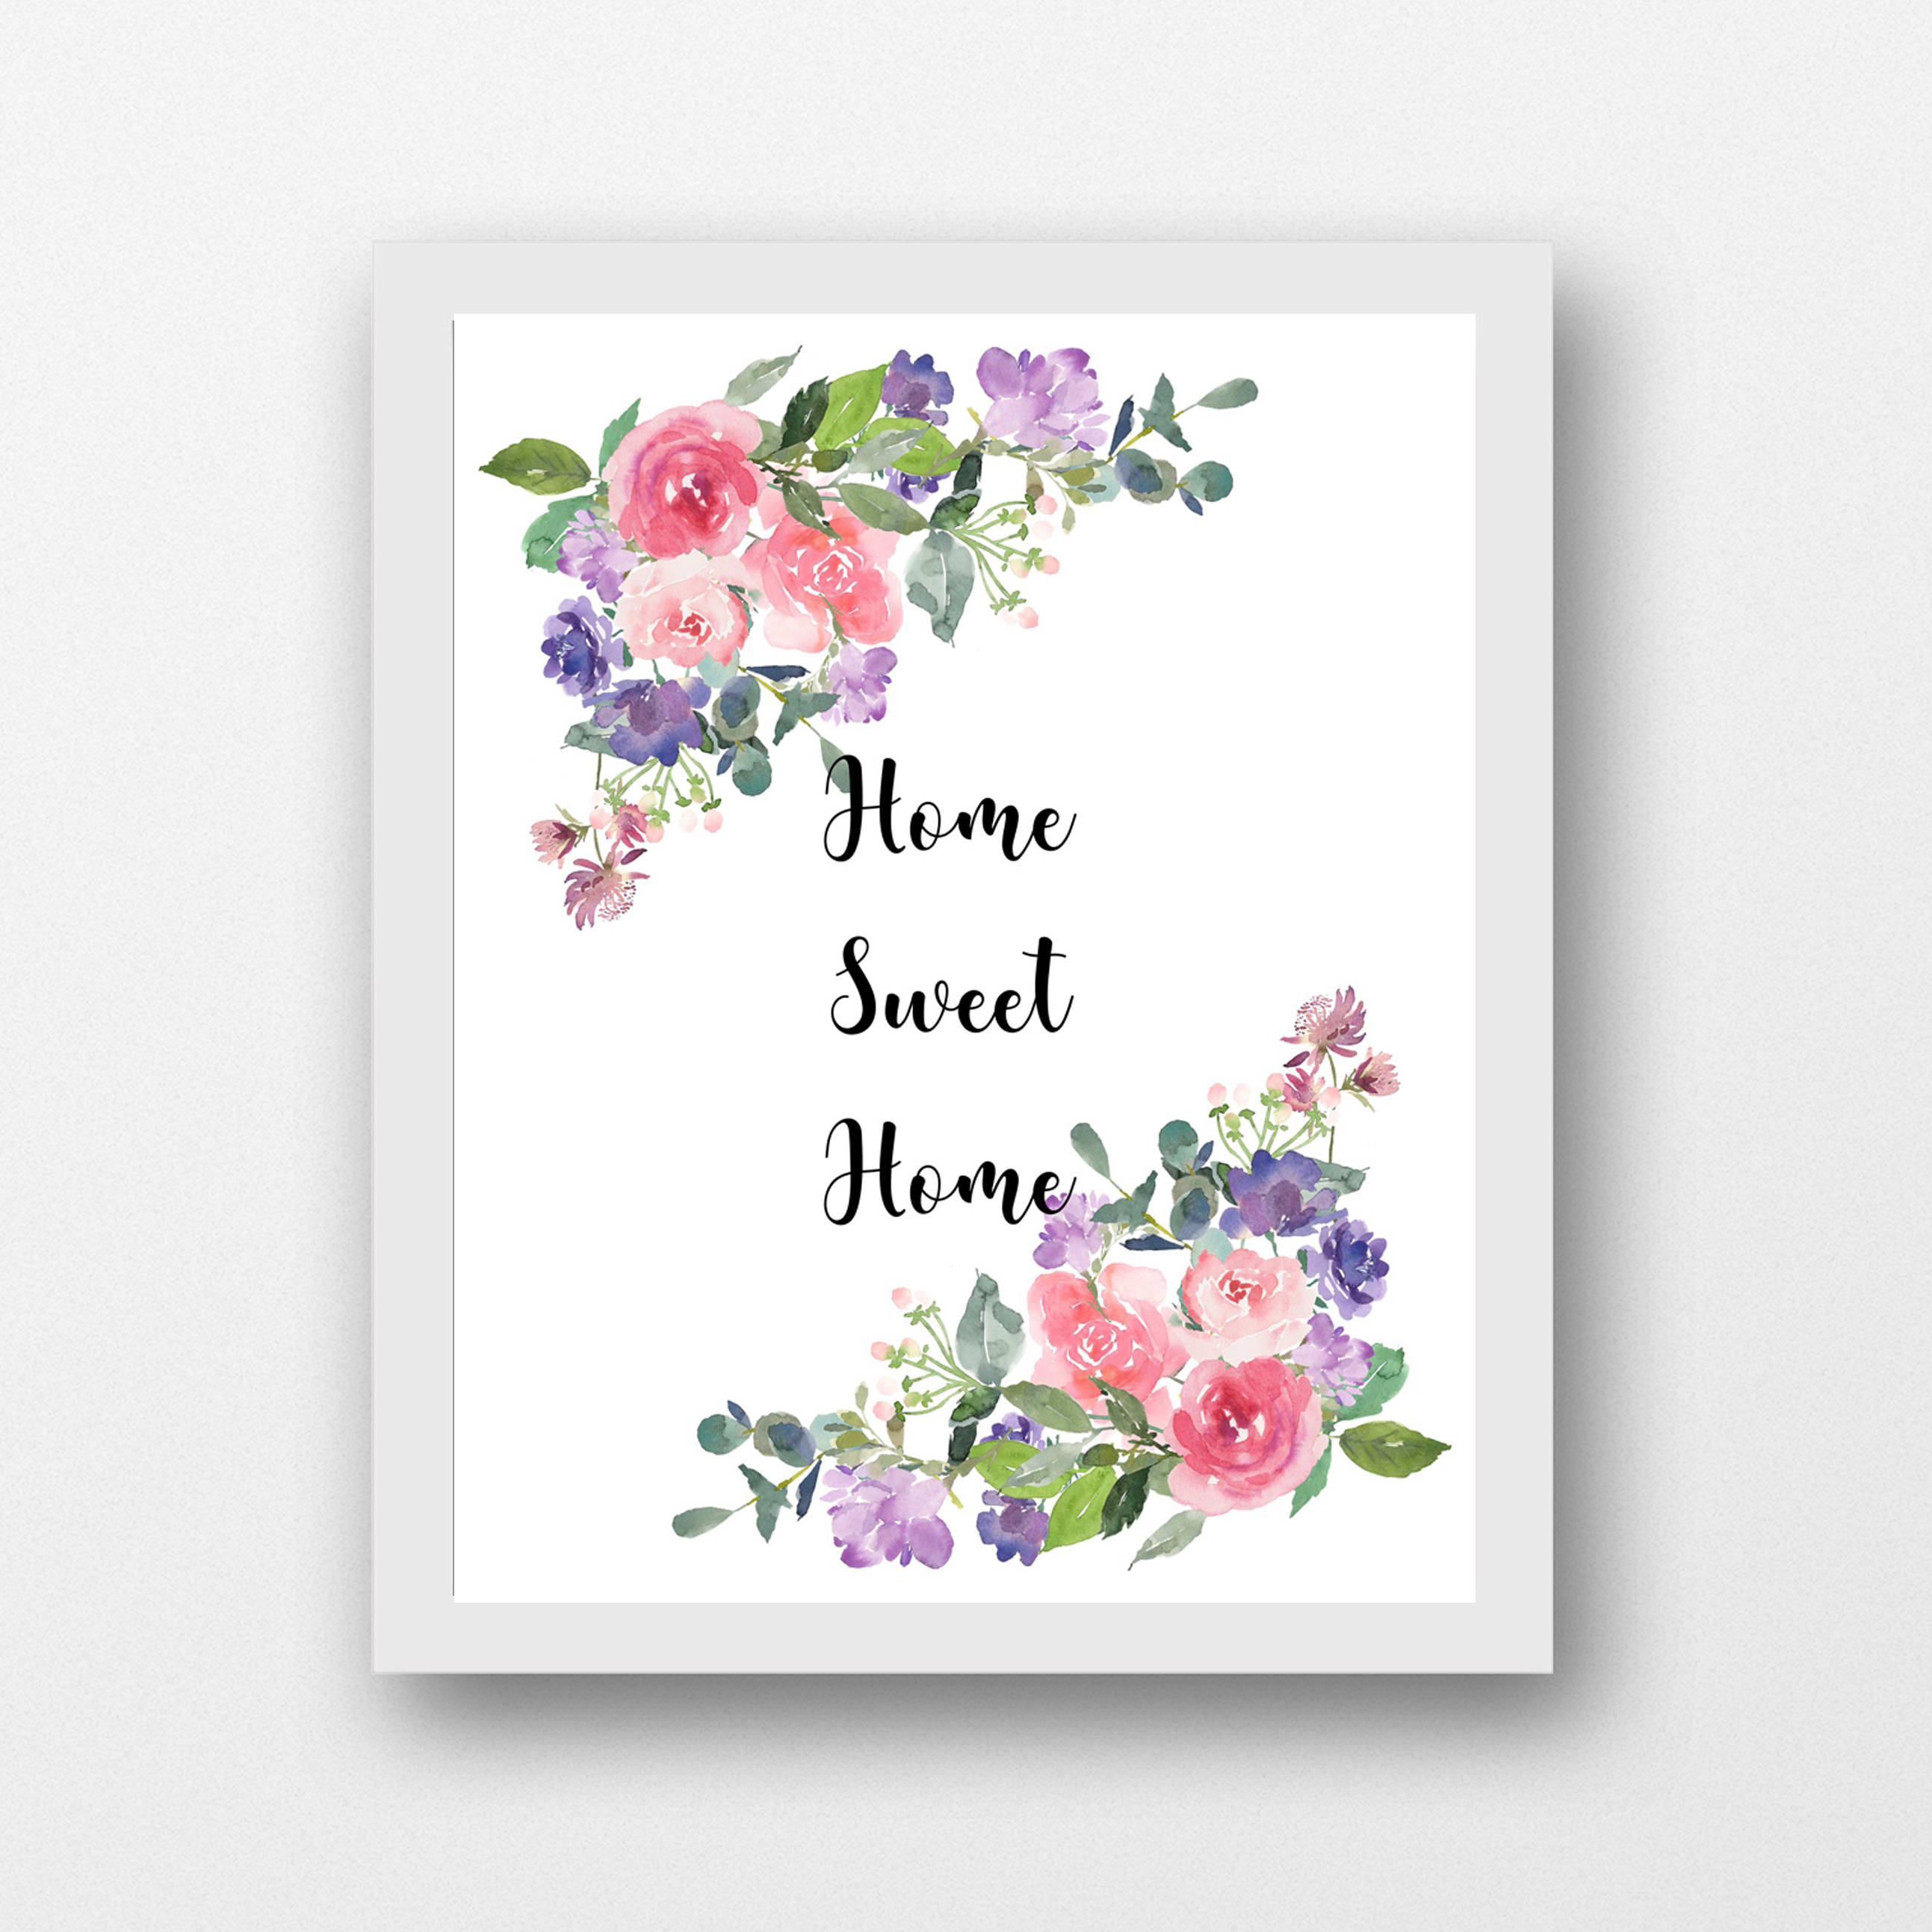 graphic regarding Home Sweet Home Printable named House Lovable House wall artwork printable, flower accents 8 x 10 printable PDF